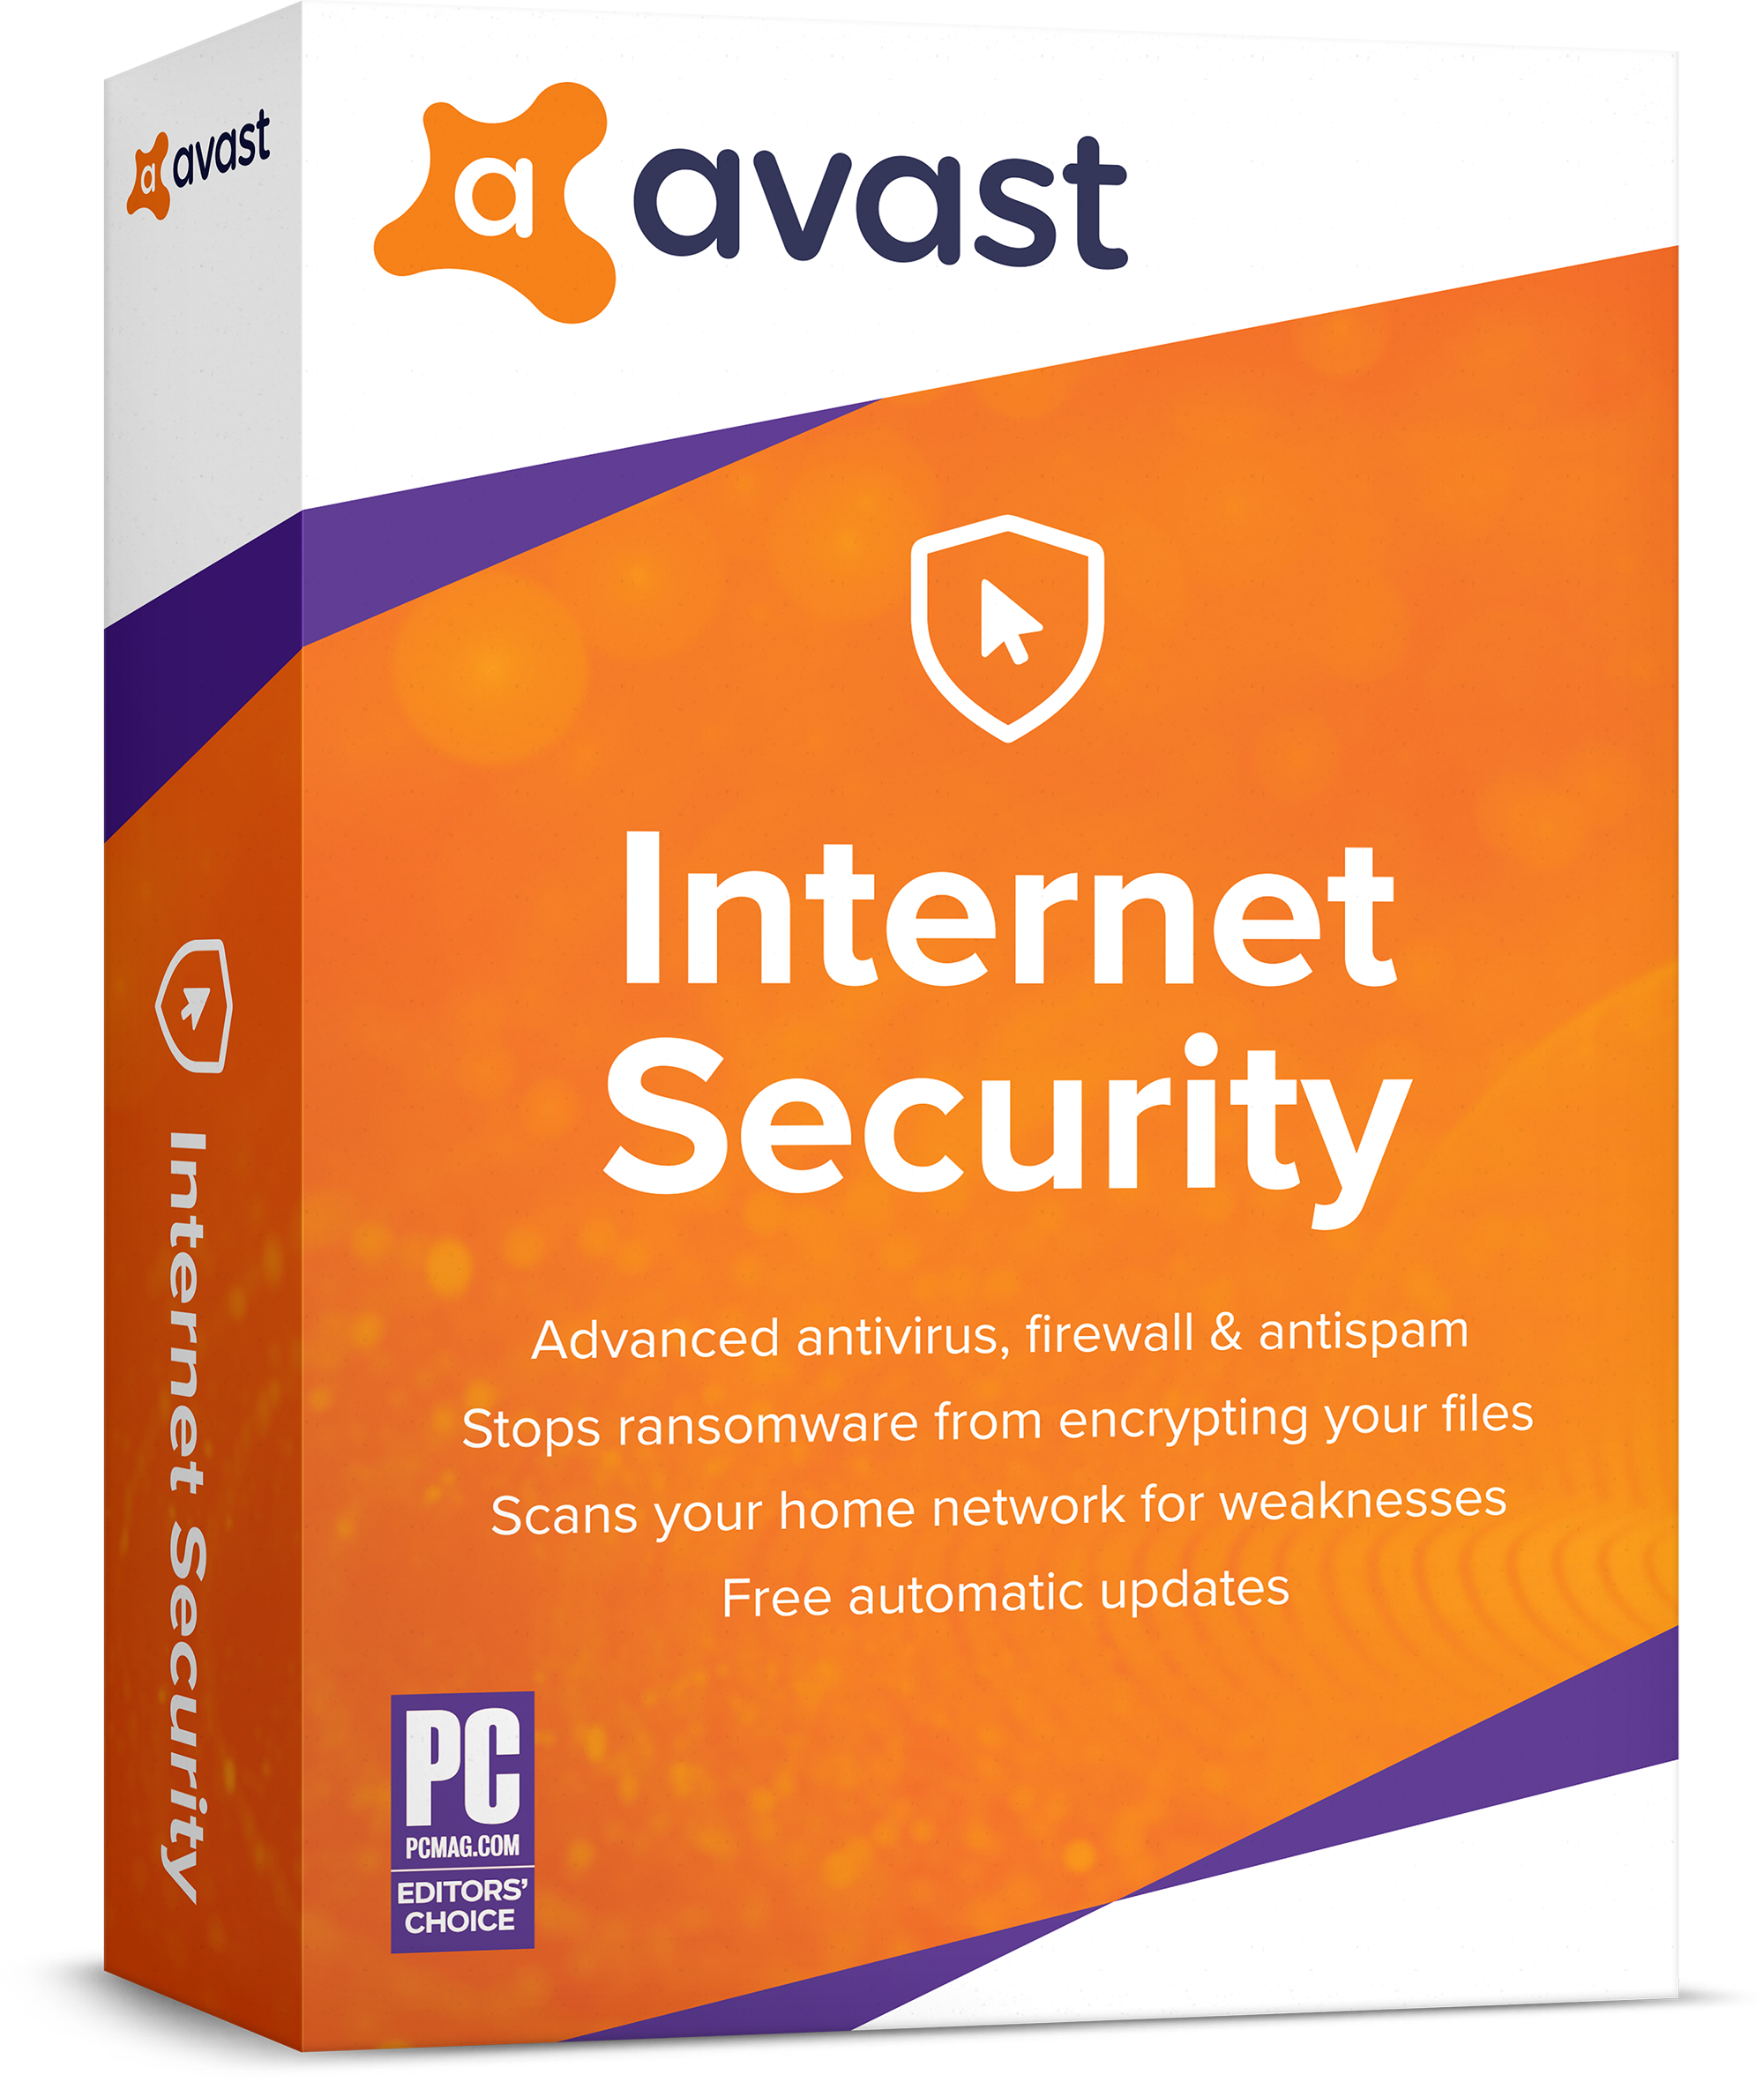 compare avast internet security and premier